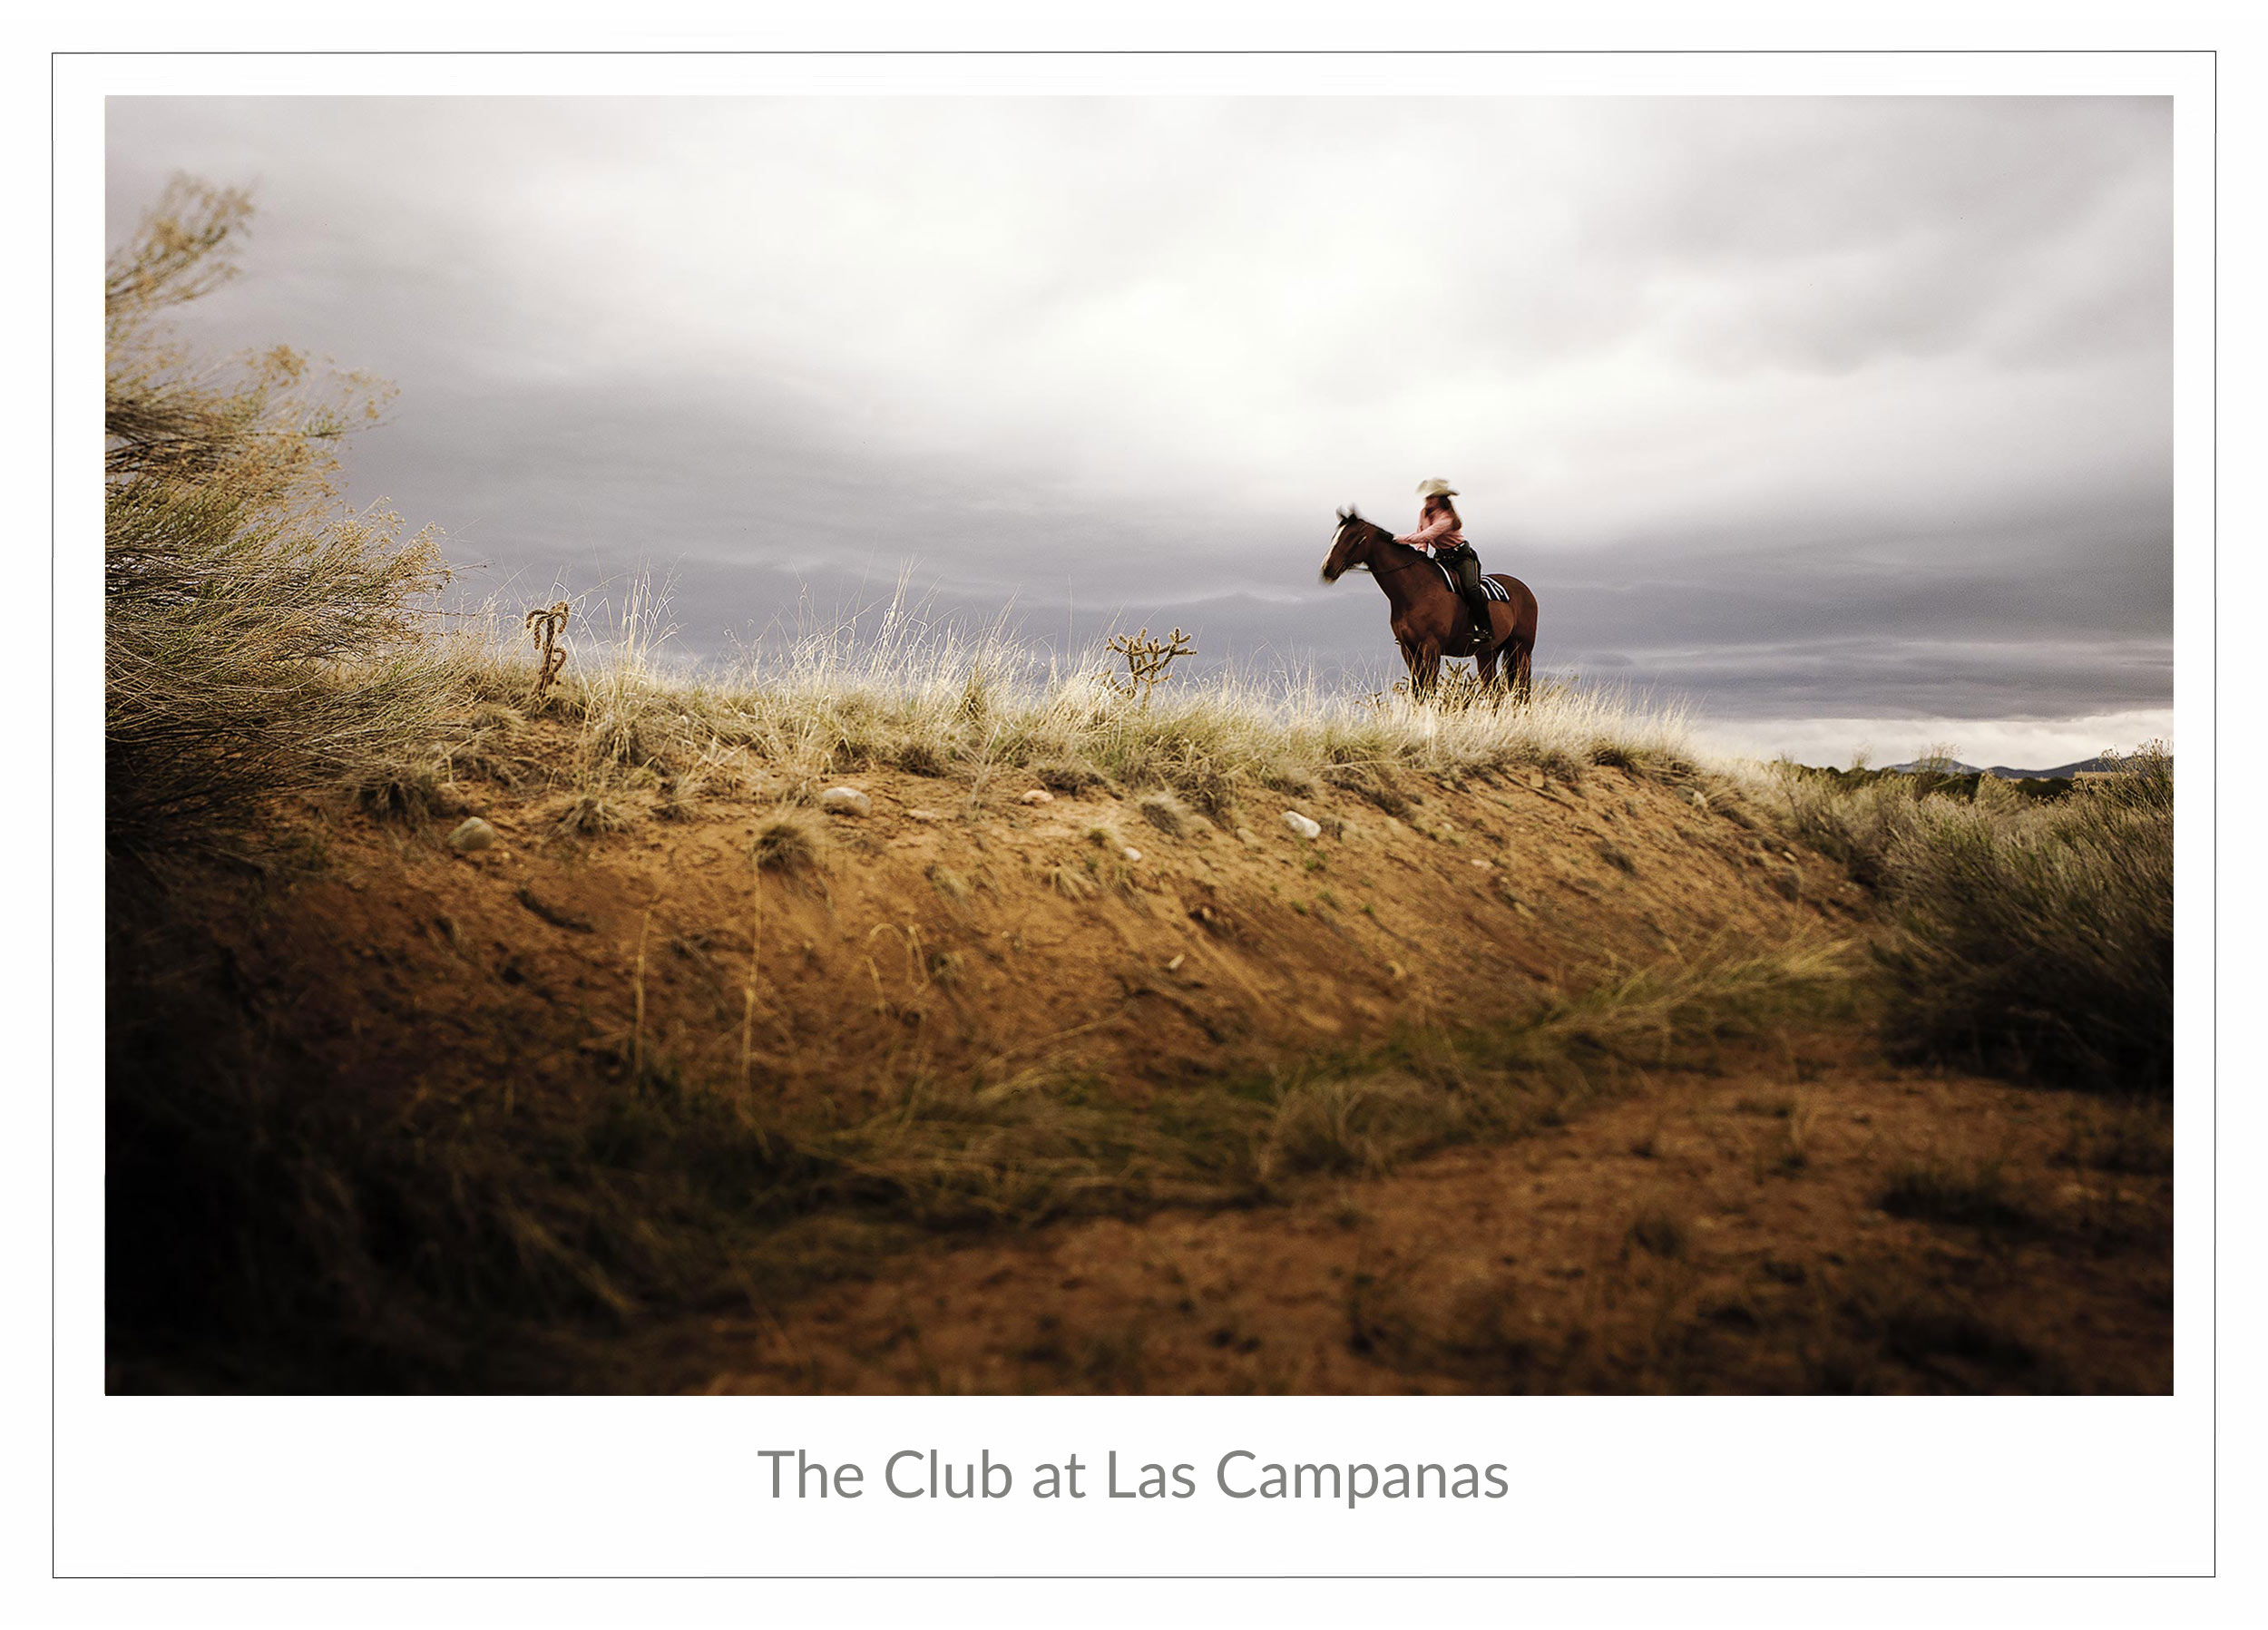 Advertising image for the Club at Las Campanas of a cowgirl on a horse in New Mexico